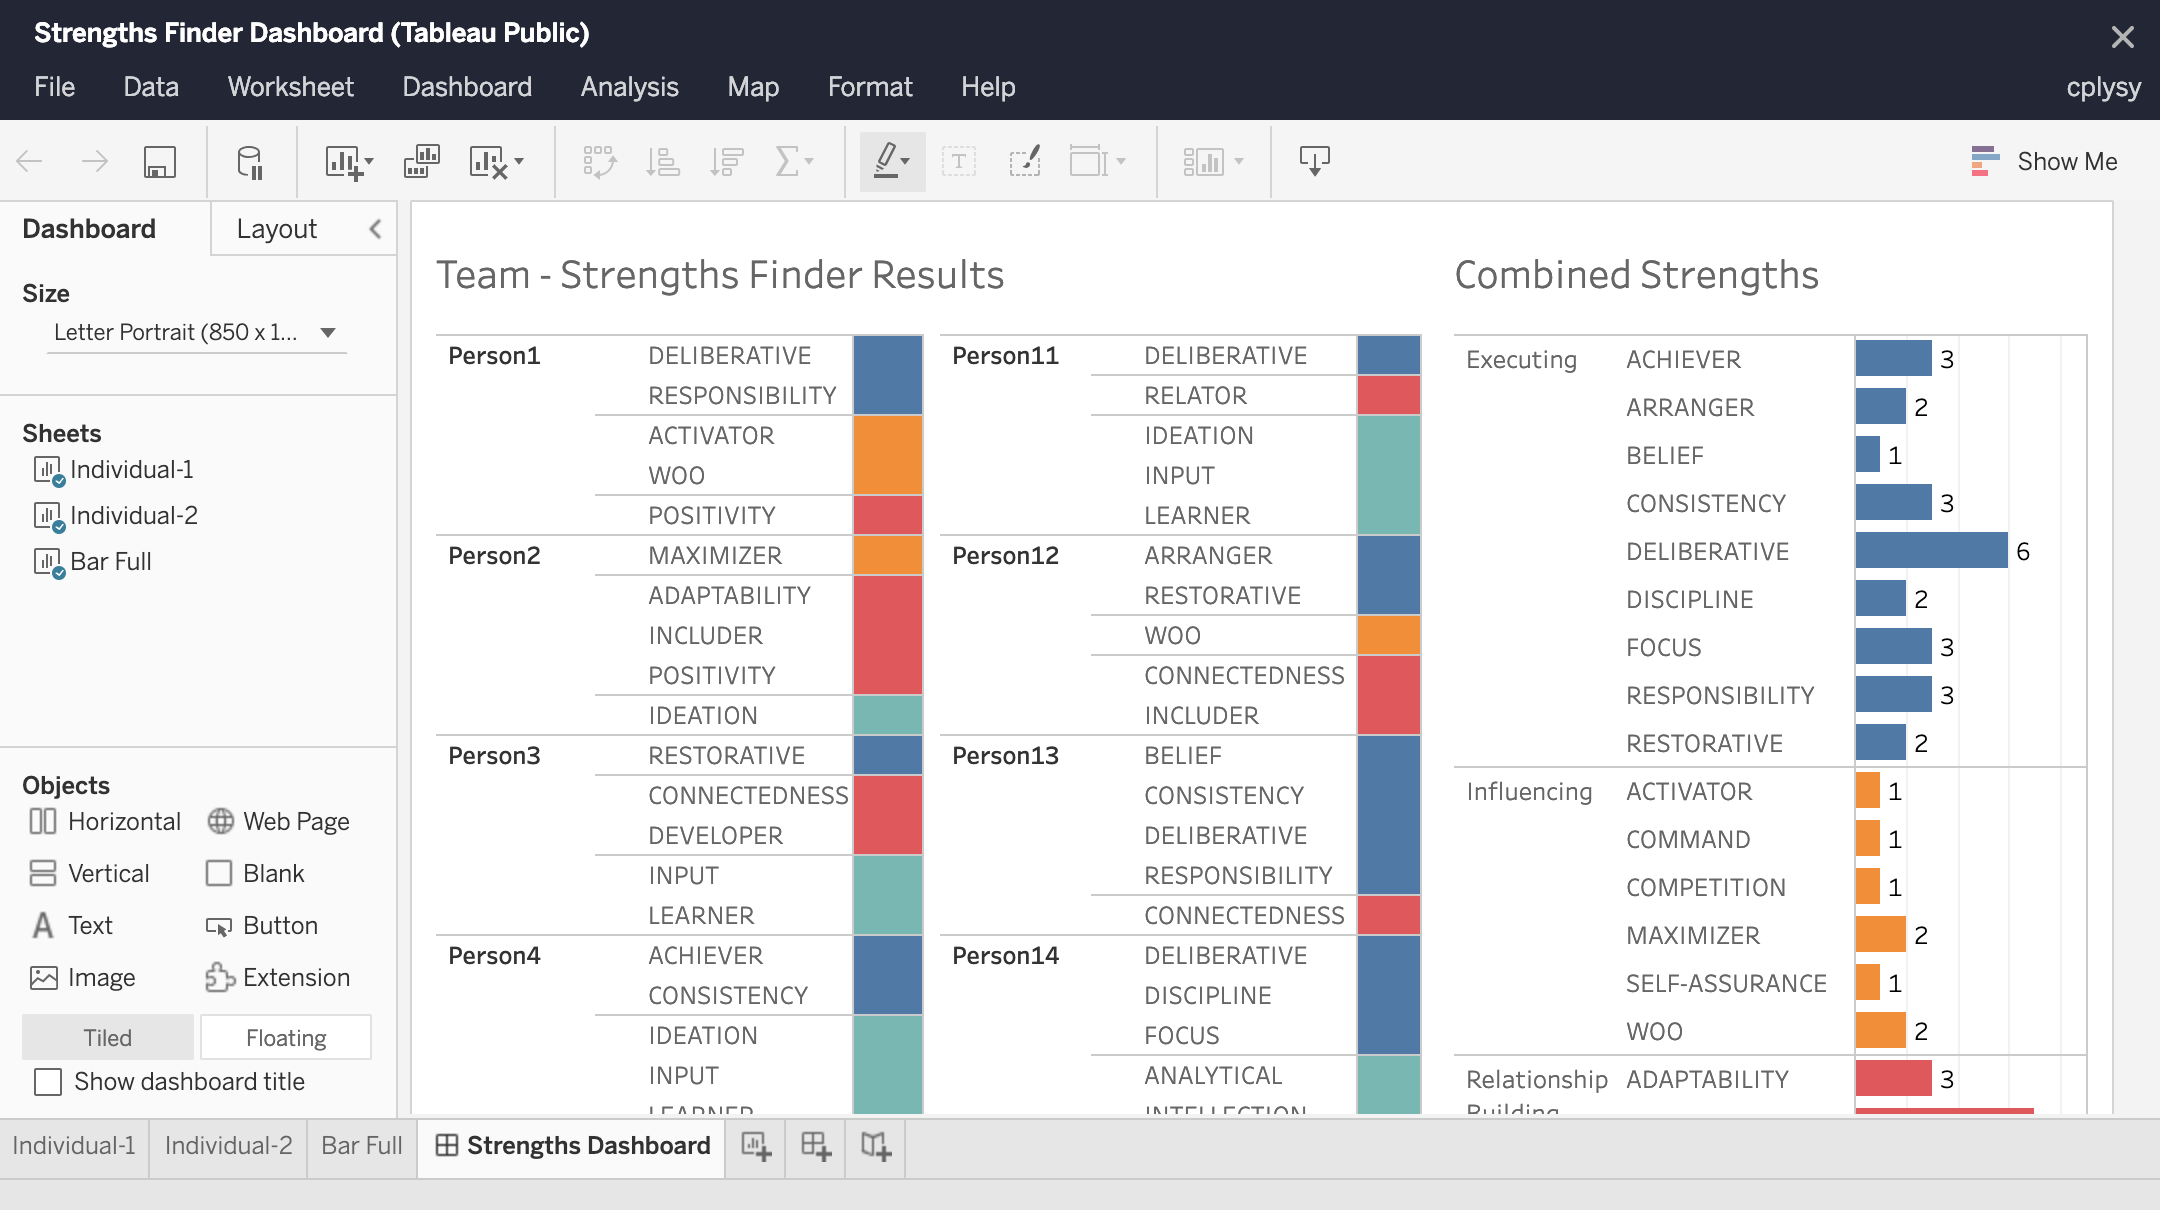 Visualizing Strengths Finder Results in Tableau